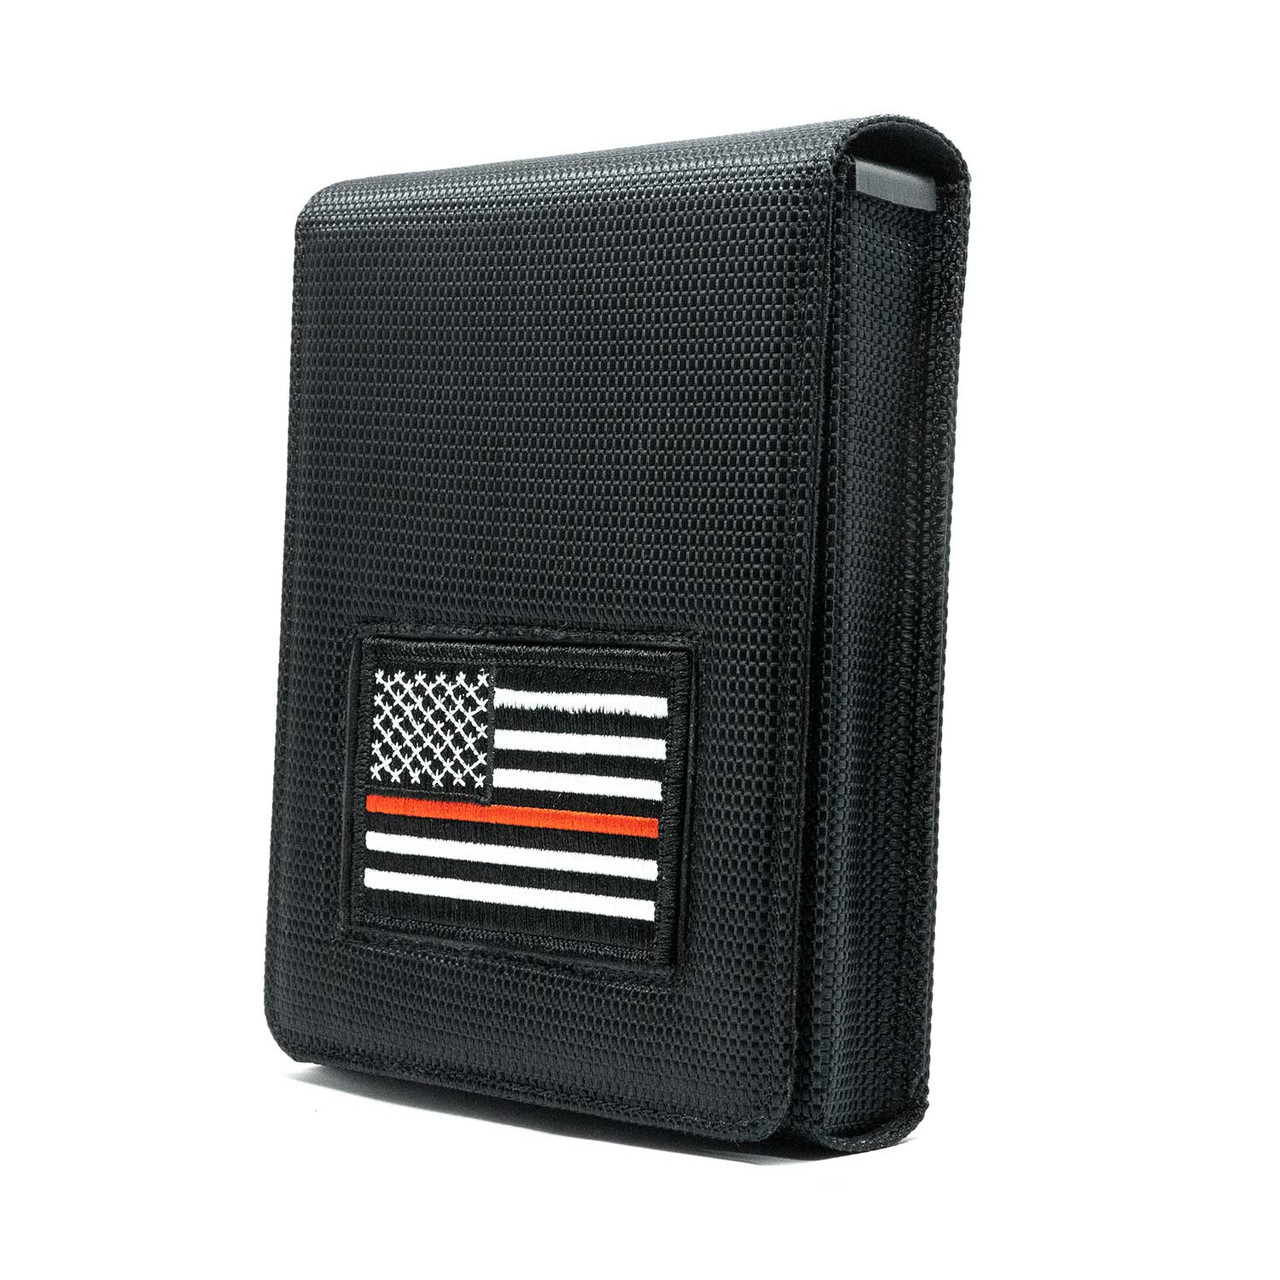 Walther PPK/S Thin Red Line Holster